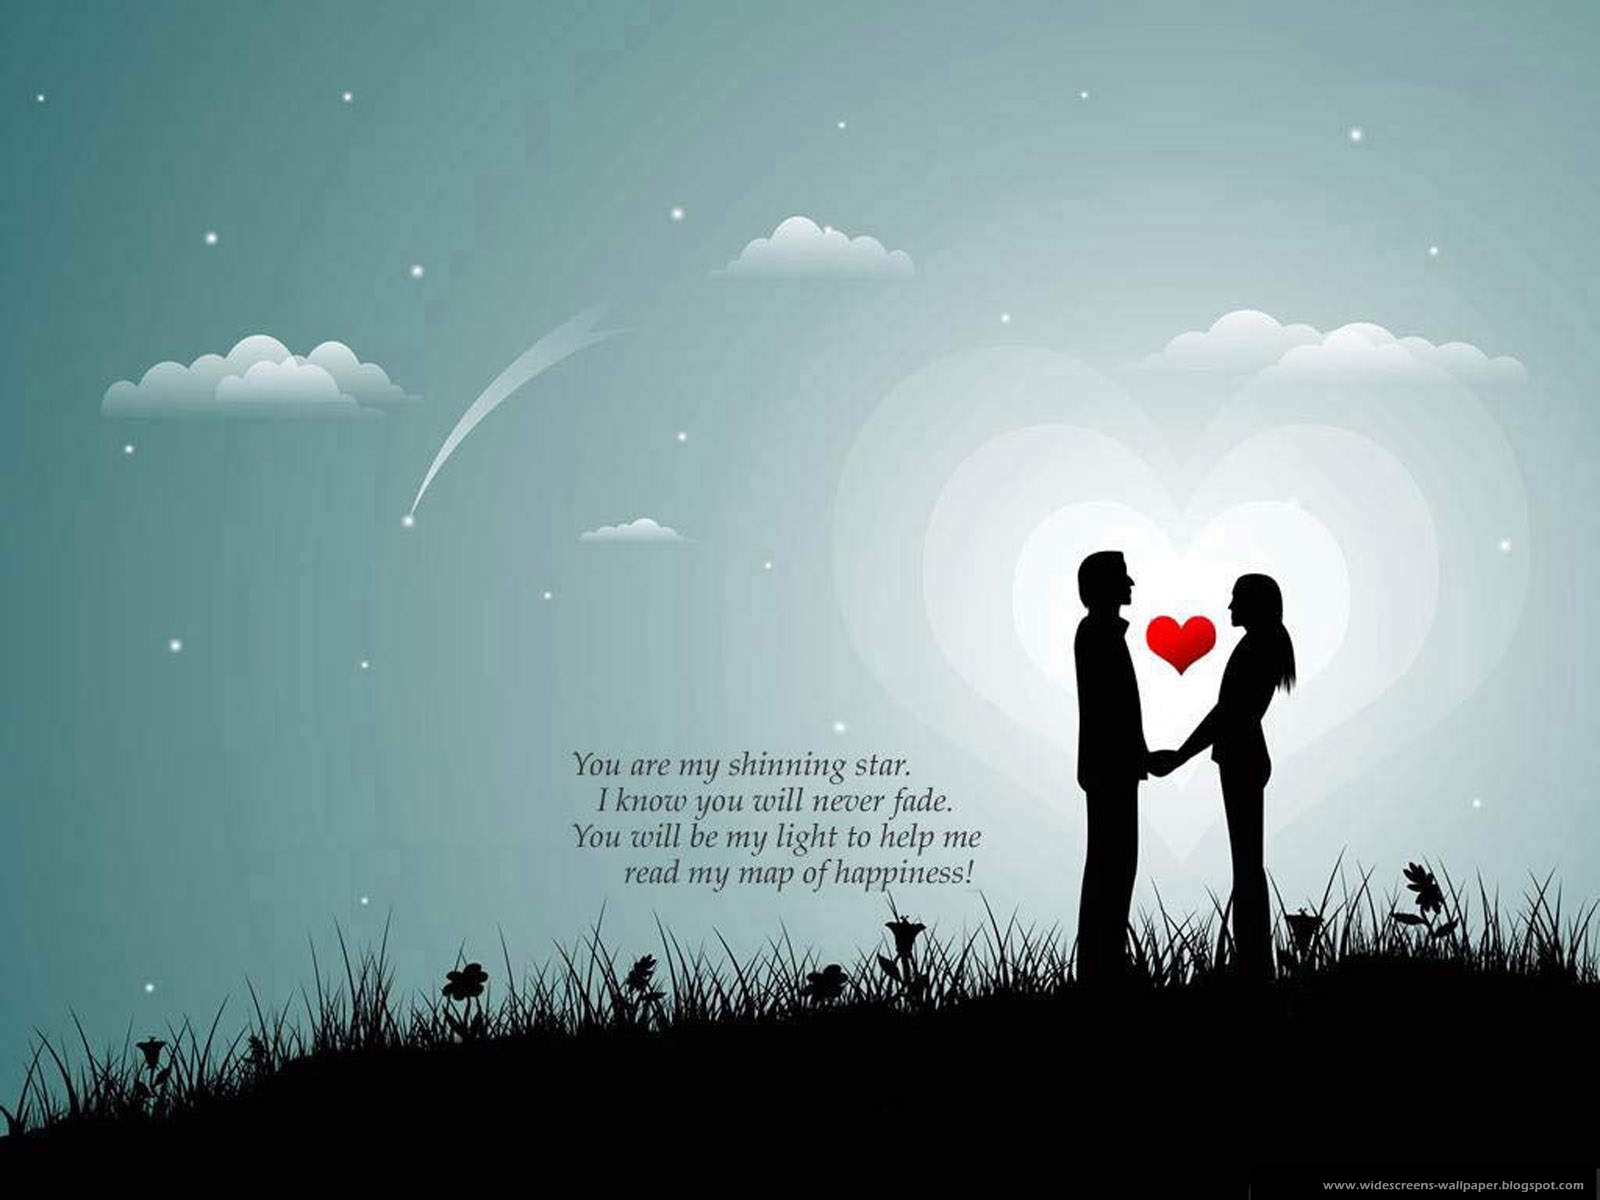 relationship wallpaper - photo #18